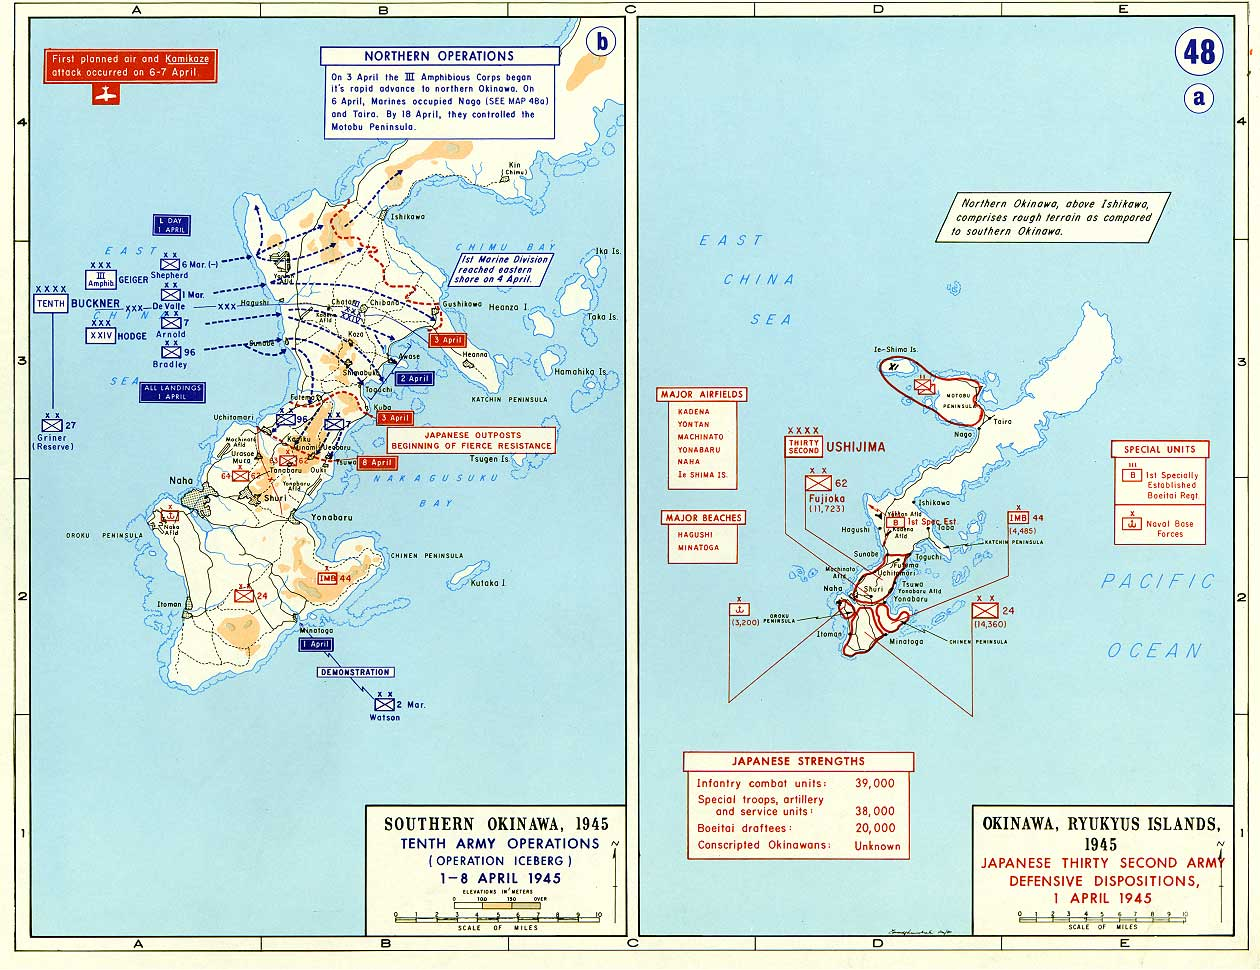 Ivo jima maps historical resources about the second world war invasion of iwo jima and okinawa 1 april 1945 gumiabroncs Choice Image